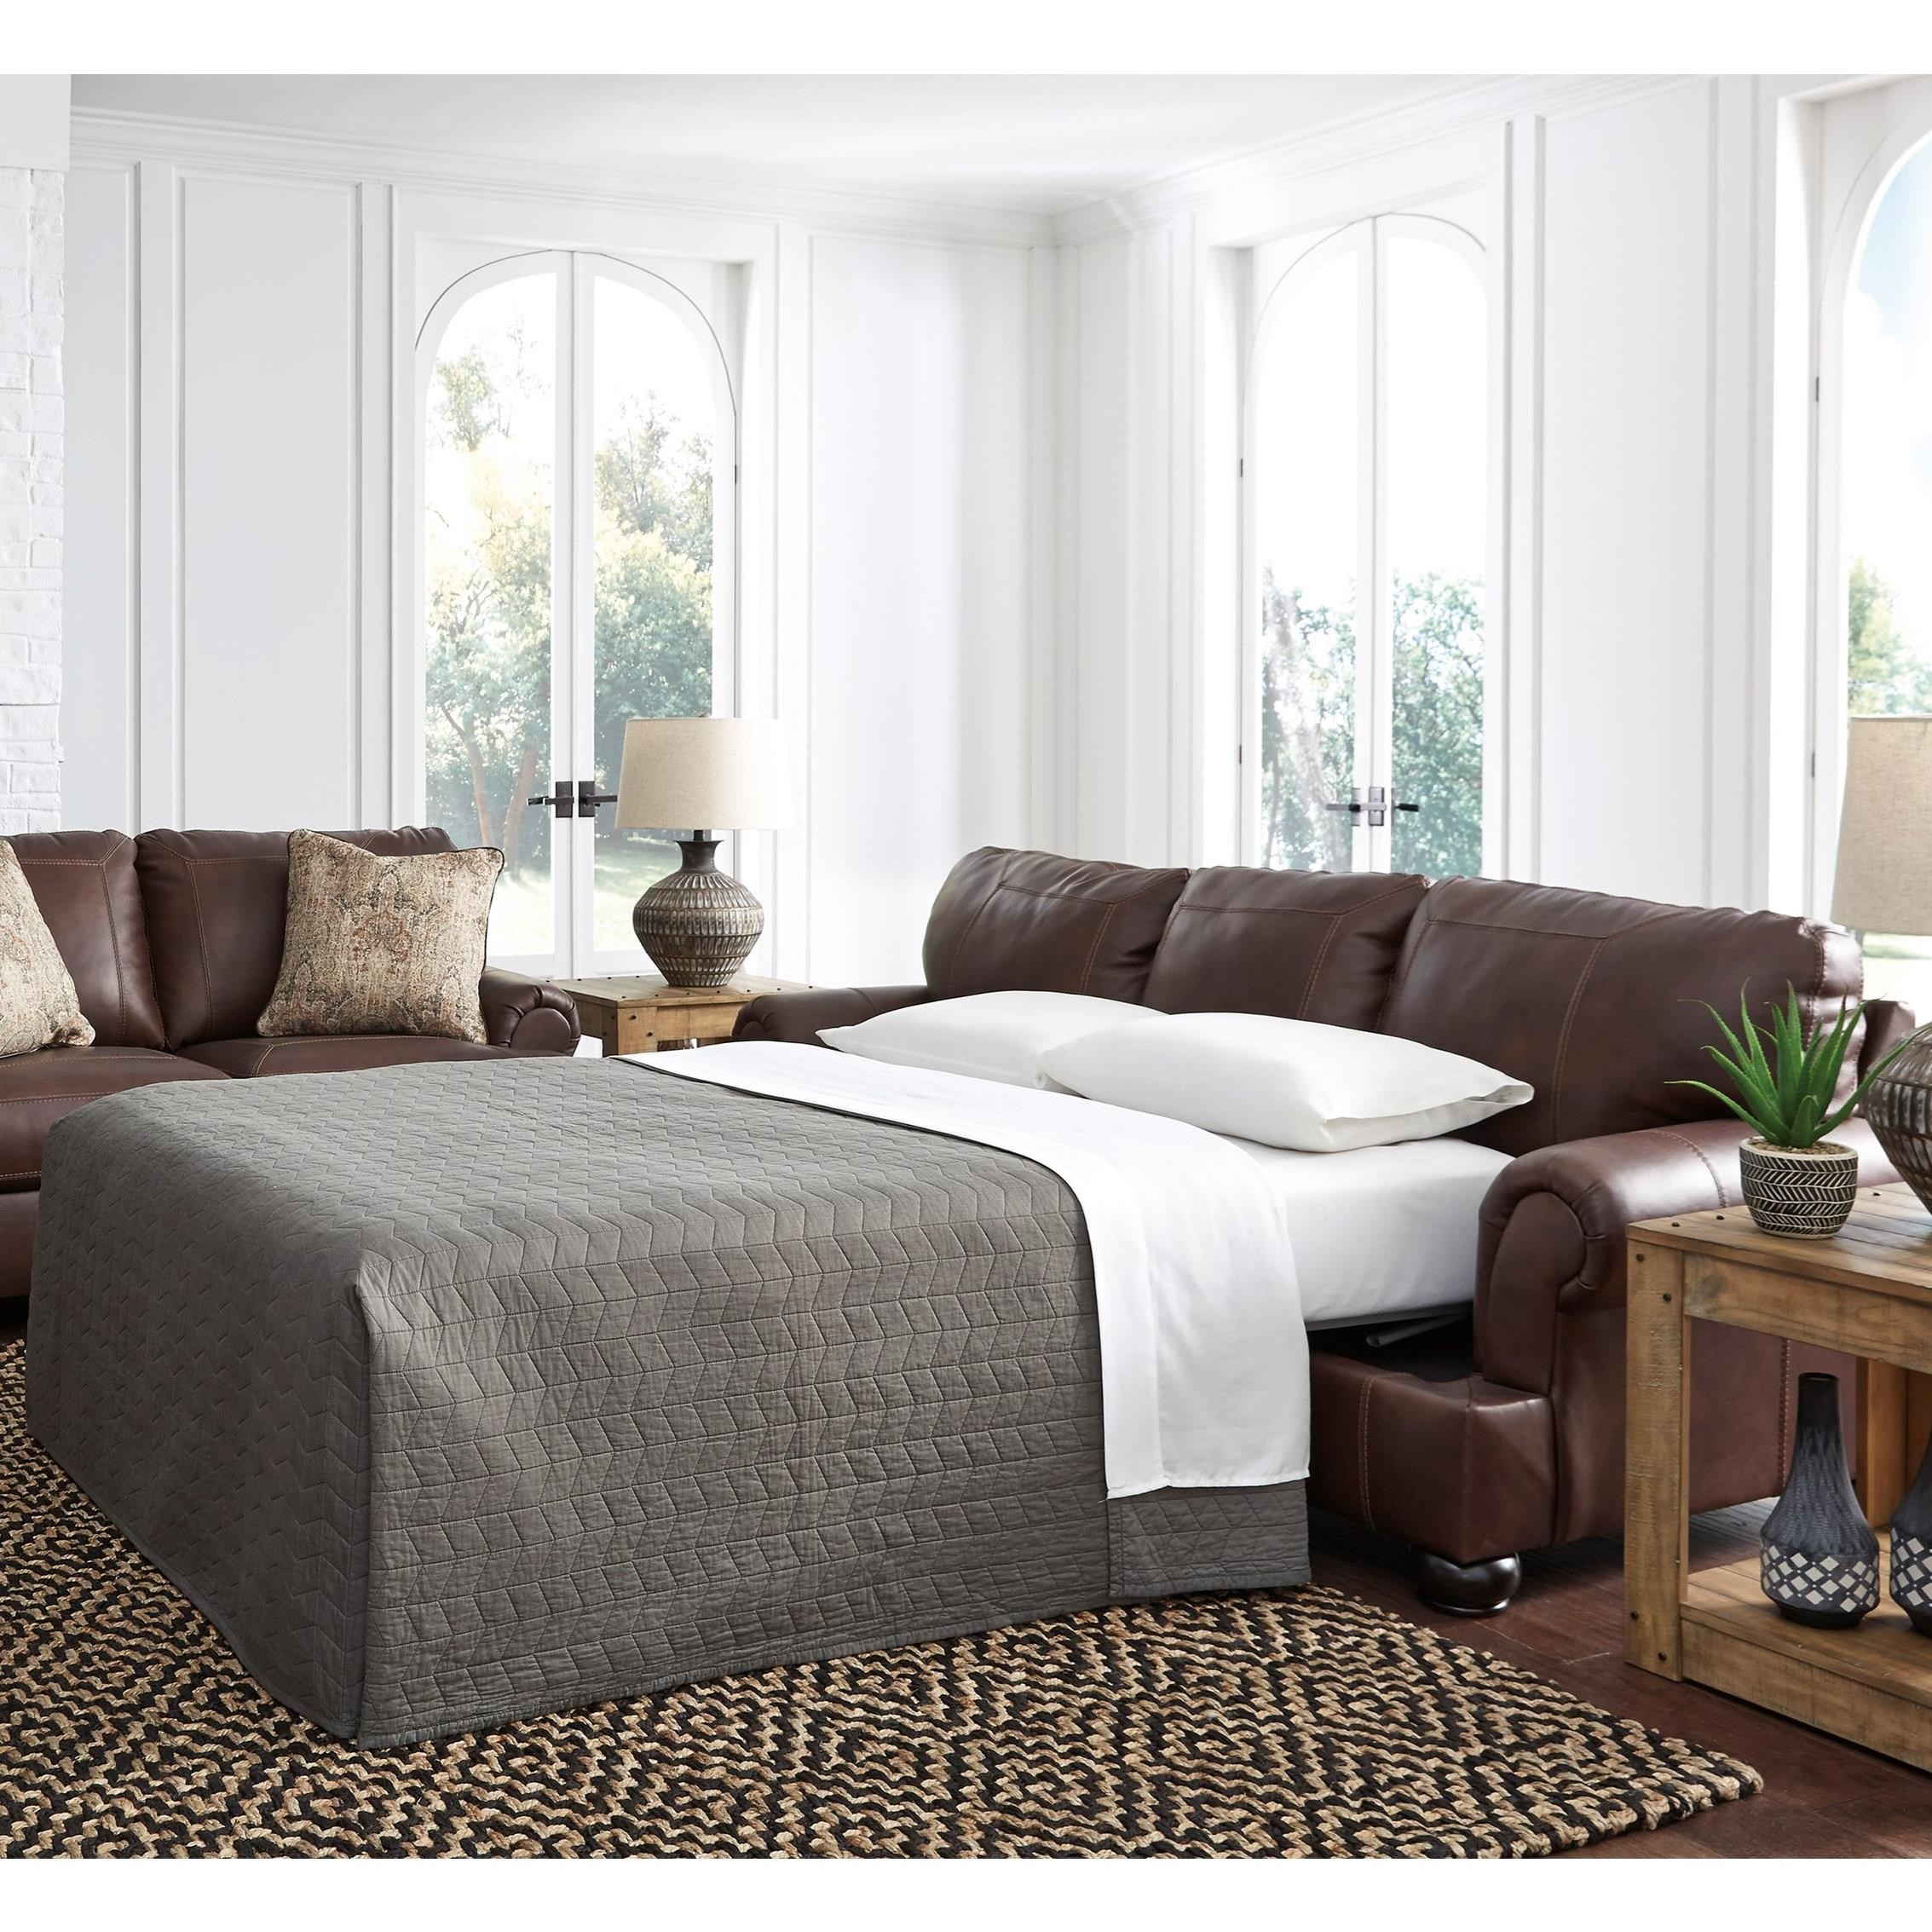 Bearmerton Queen Sofa Sleeper by Signature Design by Ashley at Value City Furniture